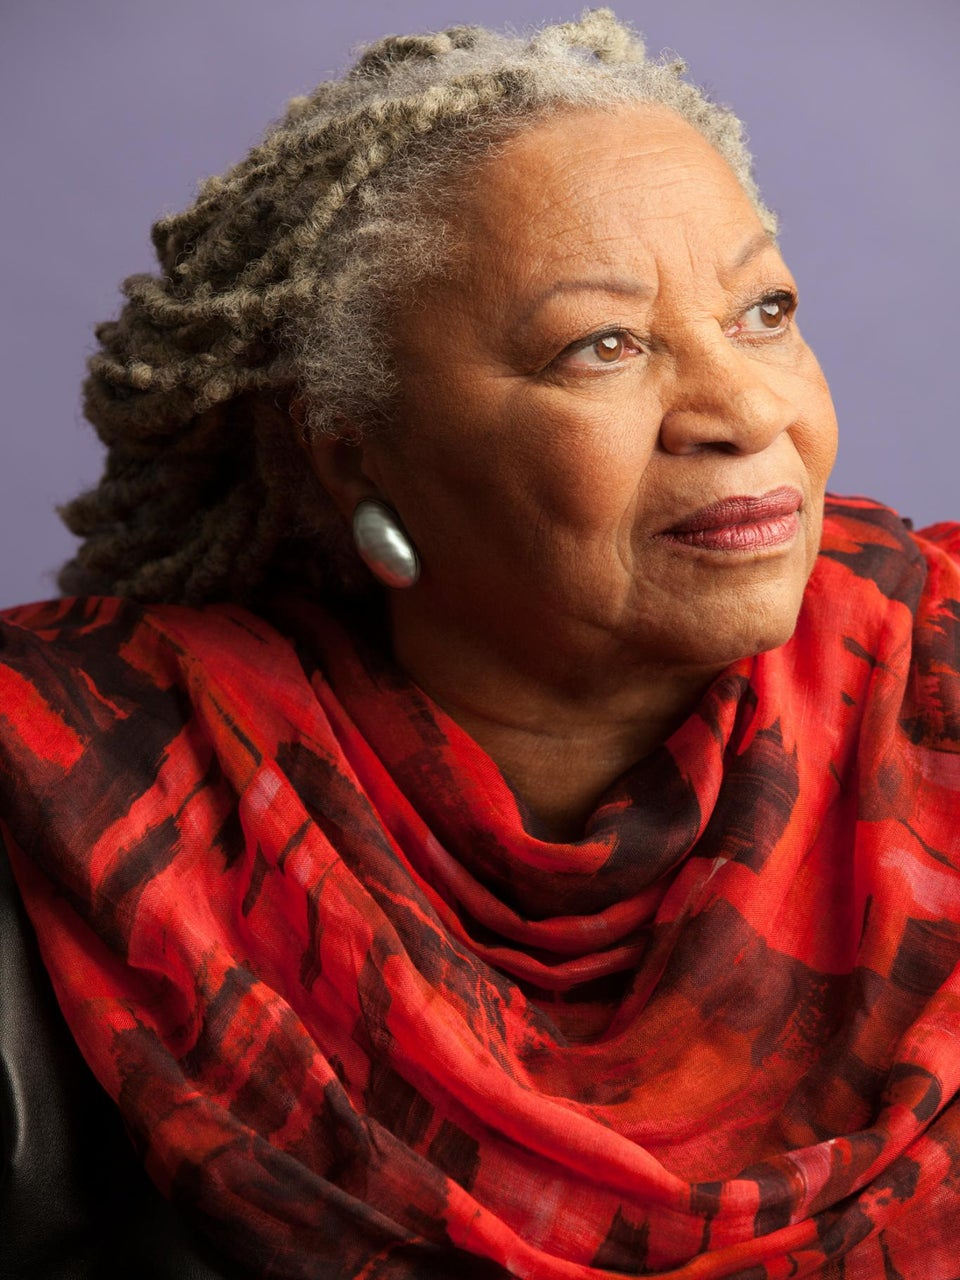 Toni Morrison's 'God Help the Child': An Instant New York Times Best-Seller